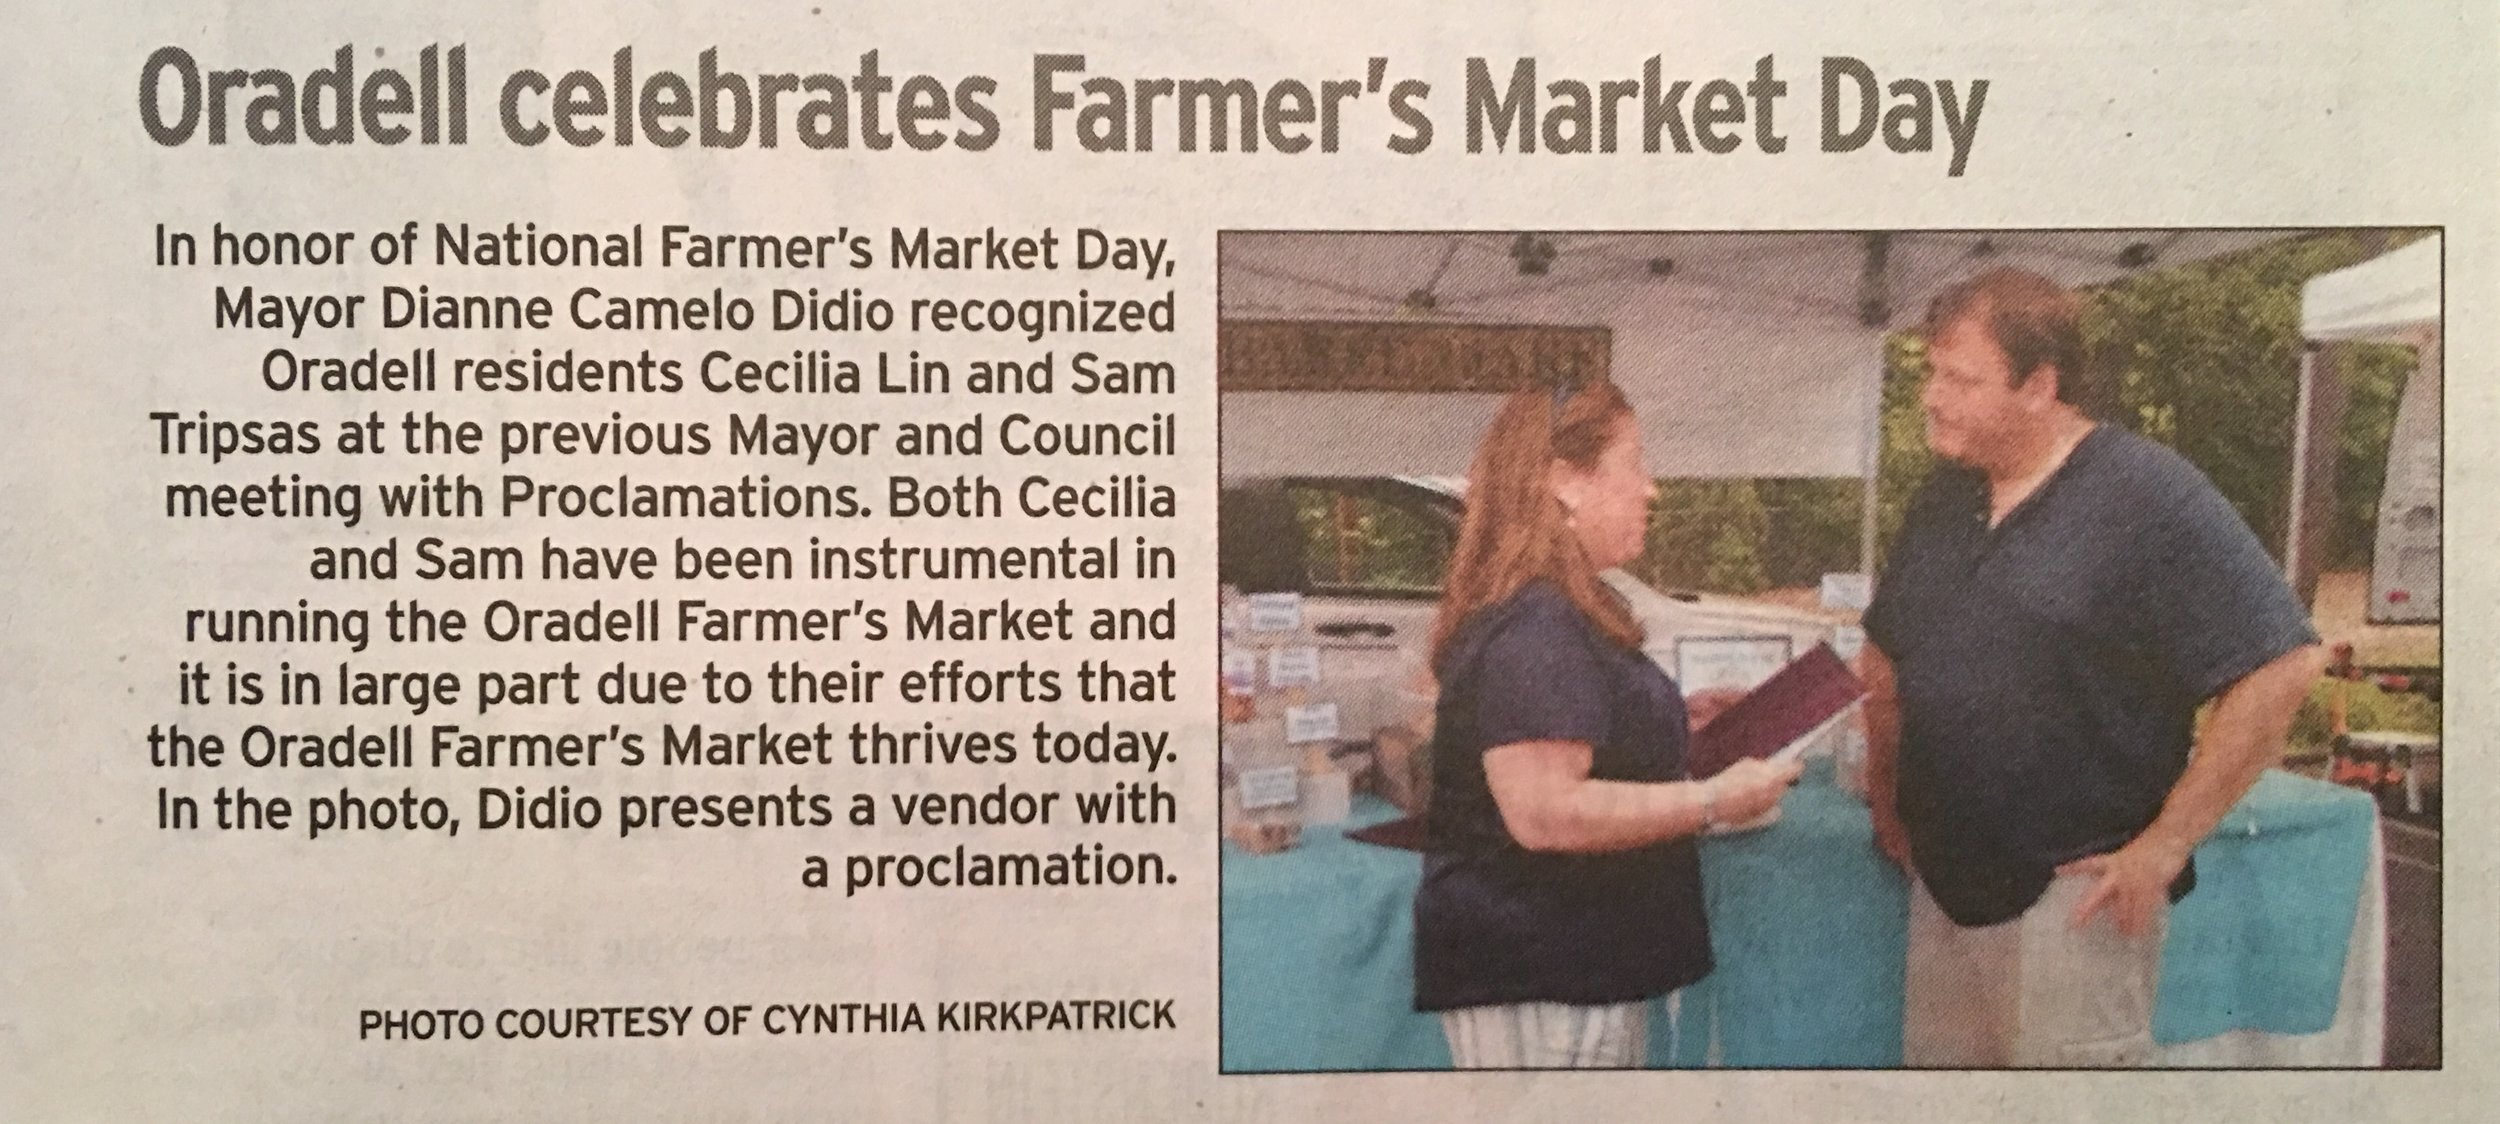 Congrats to Oradell residents Sam Tripsas and Cecillia Lin for volunteering their time and running the Oradell Farmers Market in town. Mayor Dianne Didio honored them with a proclamation in honor of their service. Pictured: Mayor Dianne Didio and a Farmers Market vendor